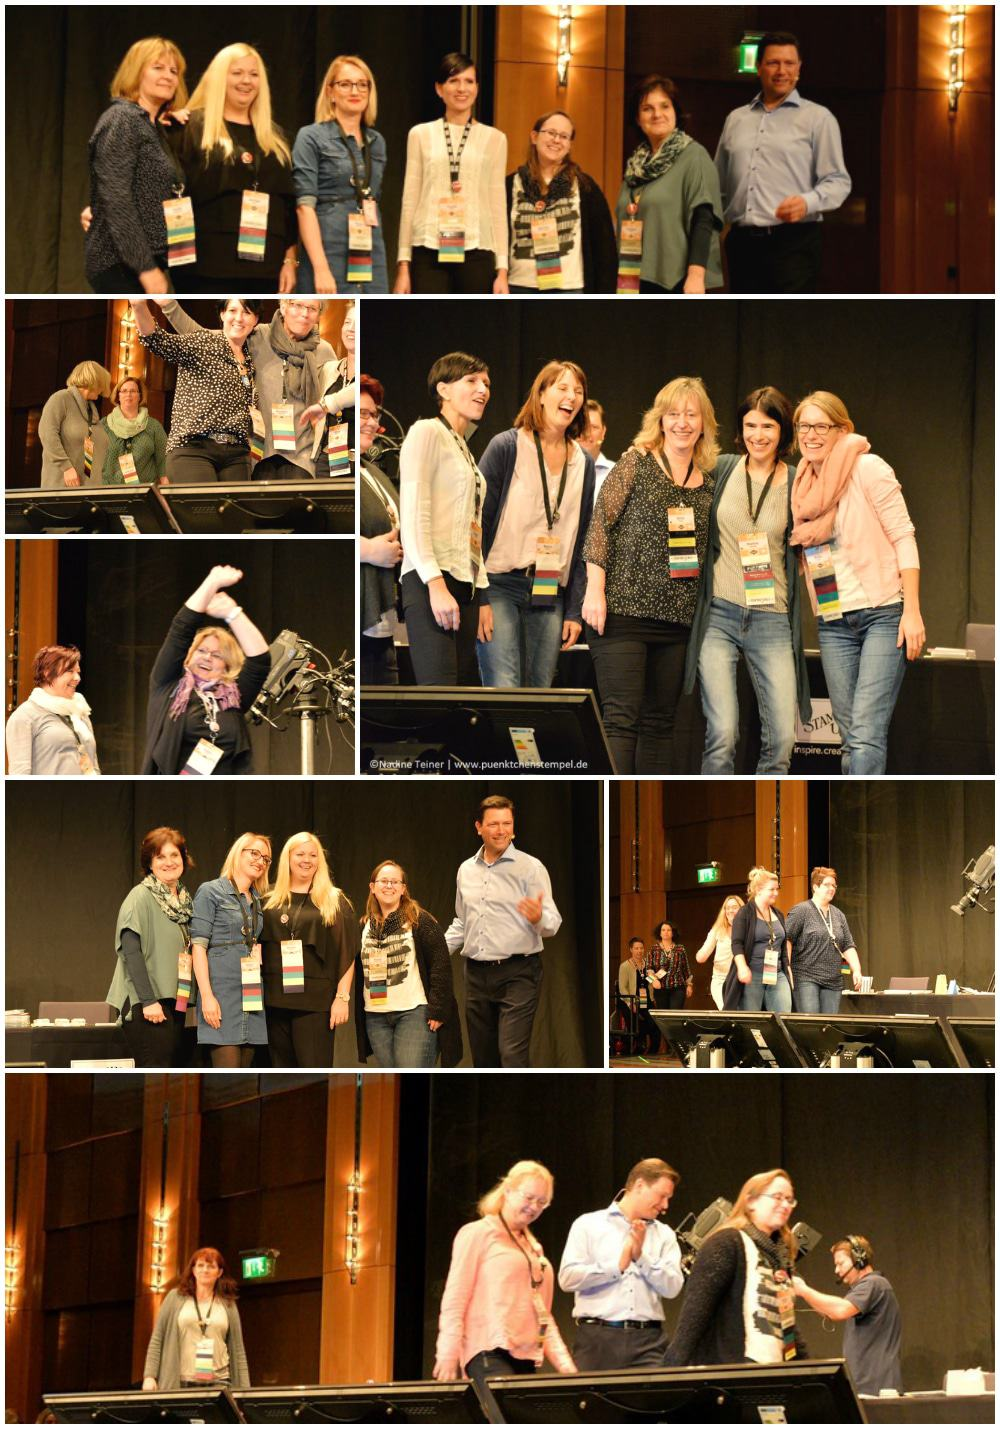 stampin-up-onstage-2016-dusseldorf-2-collage